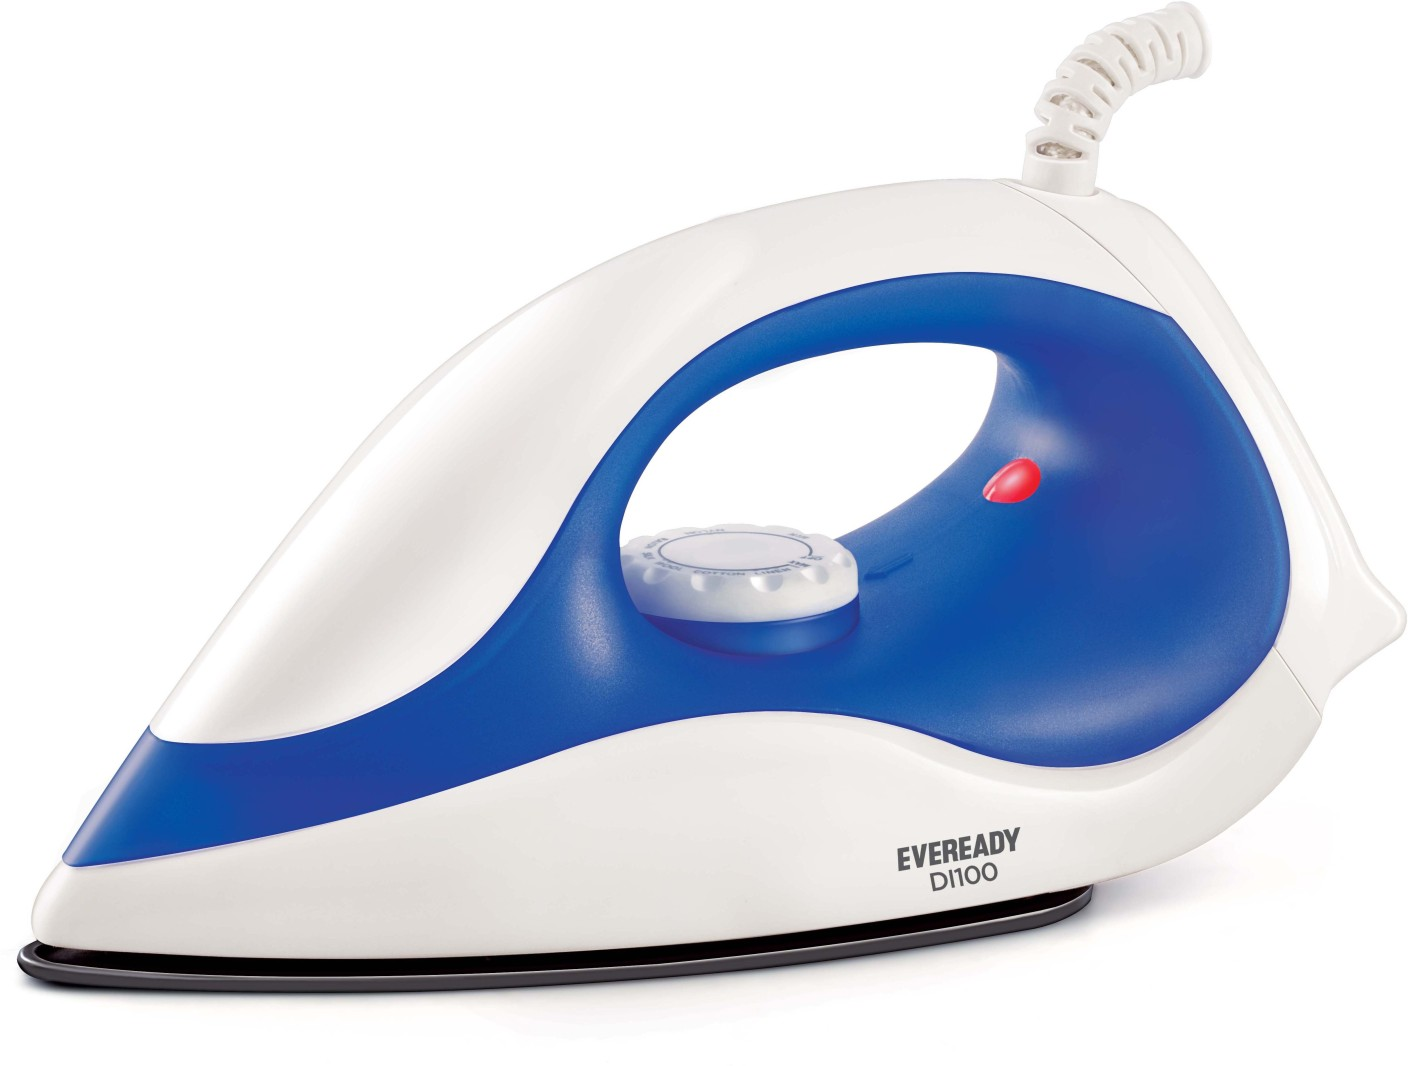 Eveready DI100 Dry Iron Price in India - Buy Eveready ...